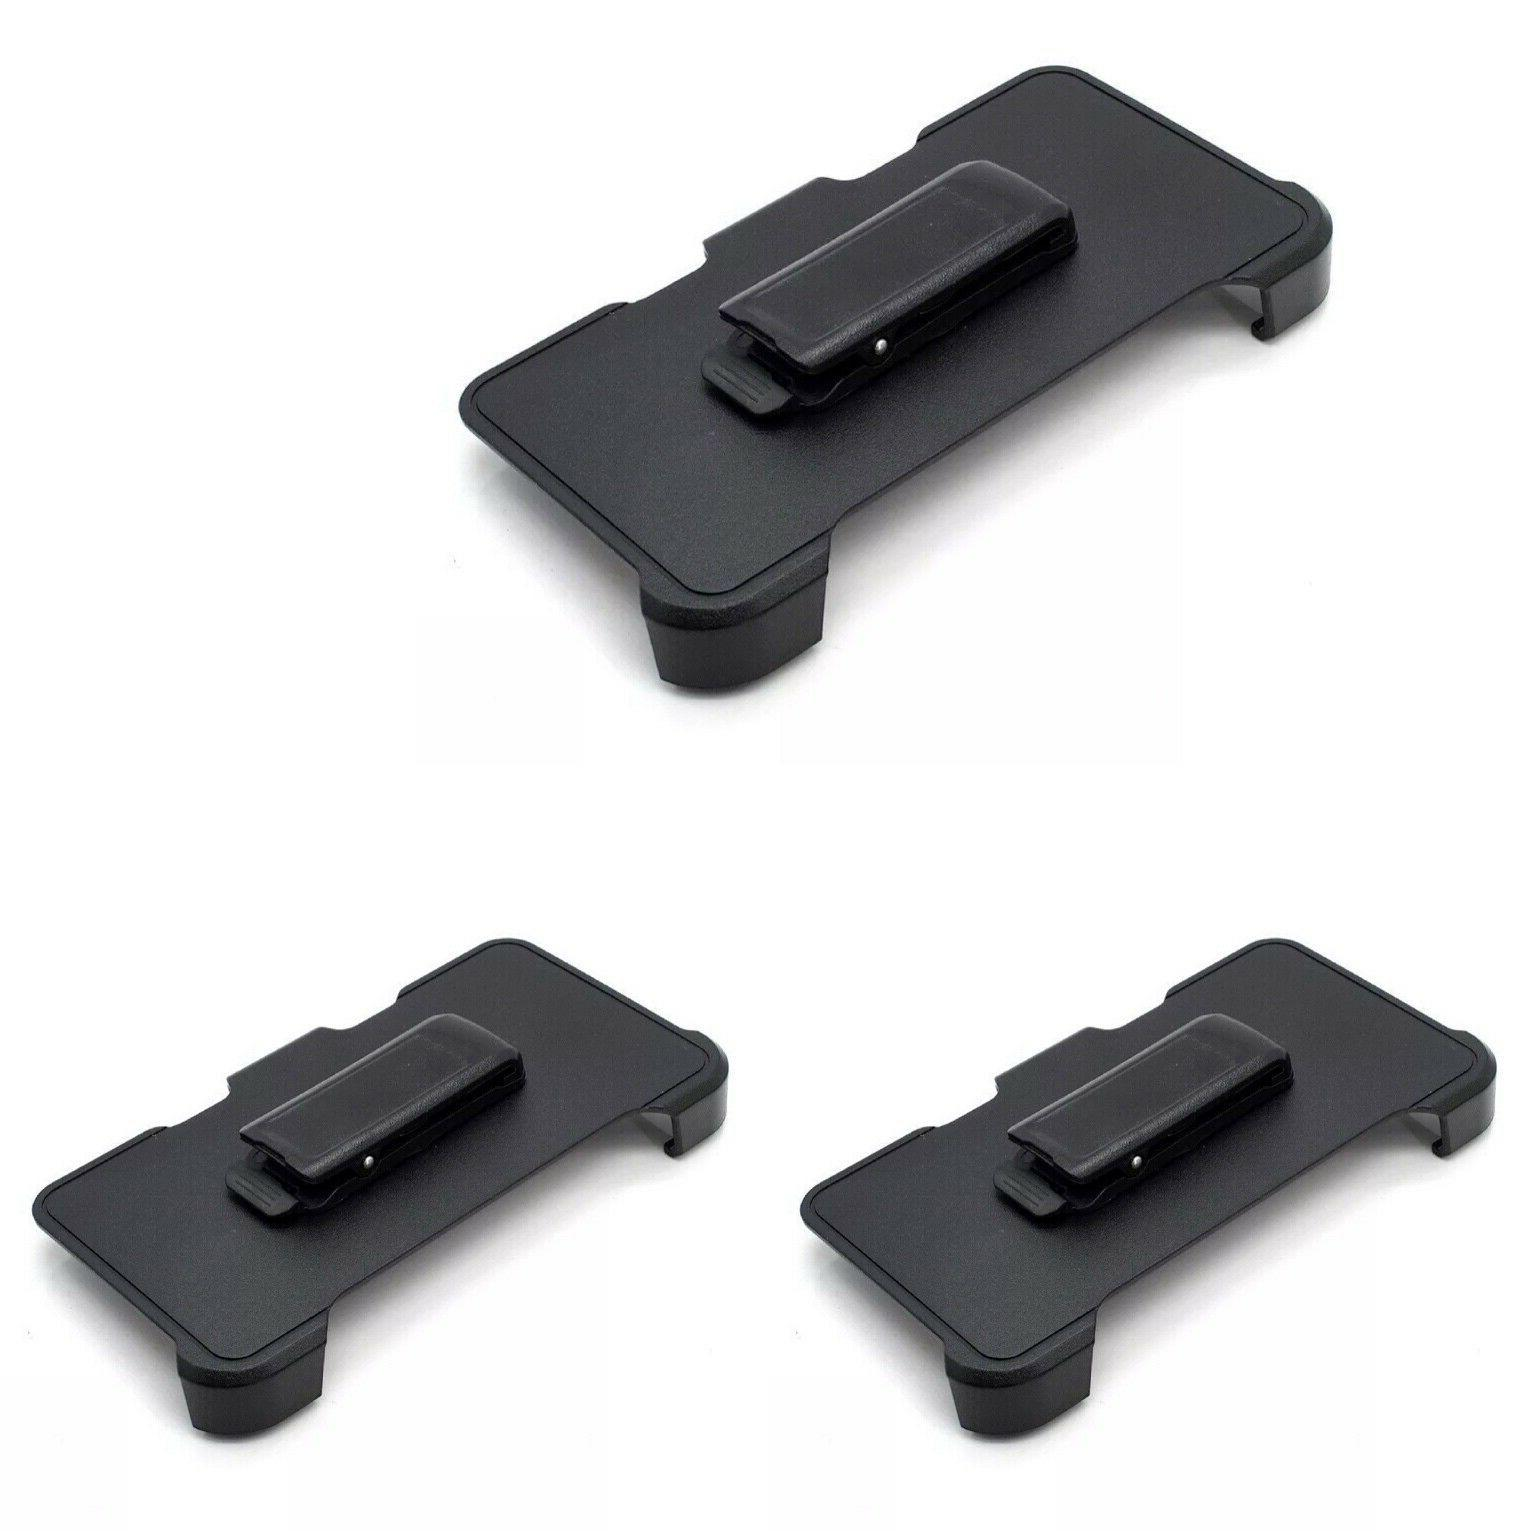 3 pack replacement belt clip holster